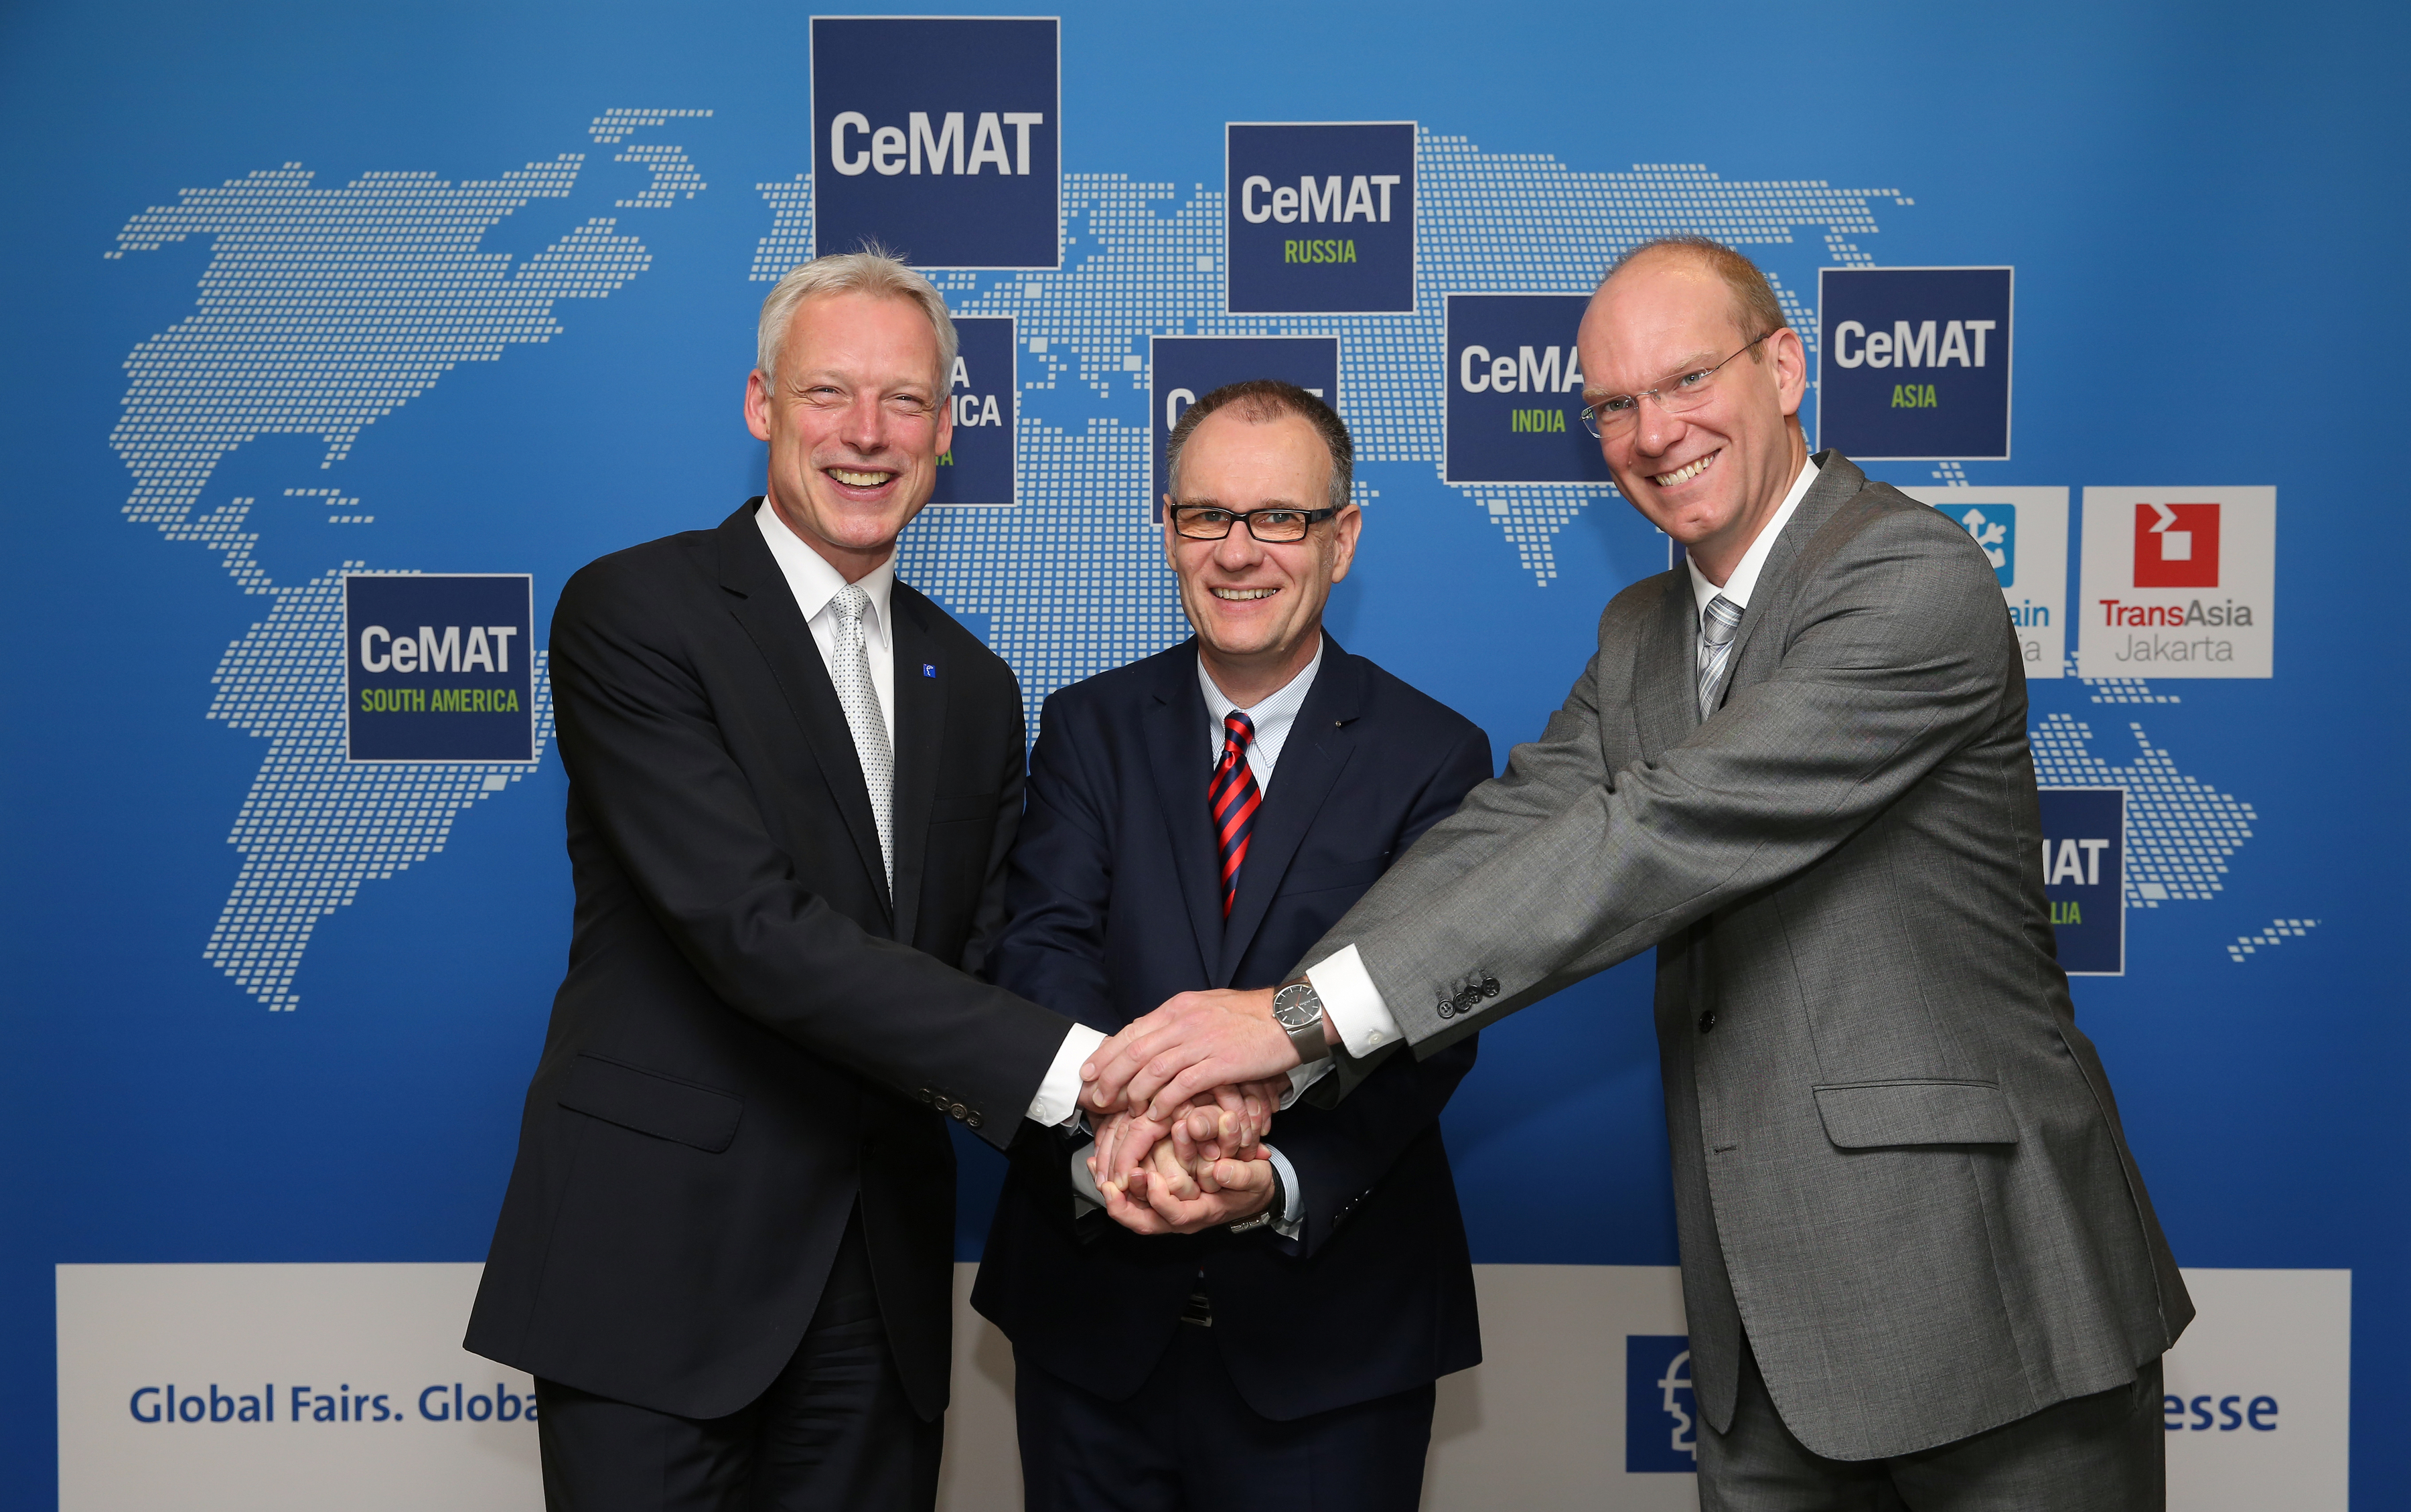 CeMAT to be co-staged with Hannover Messe